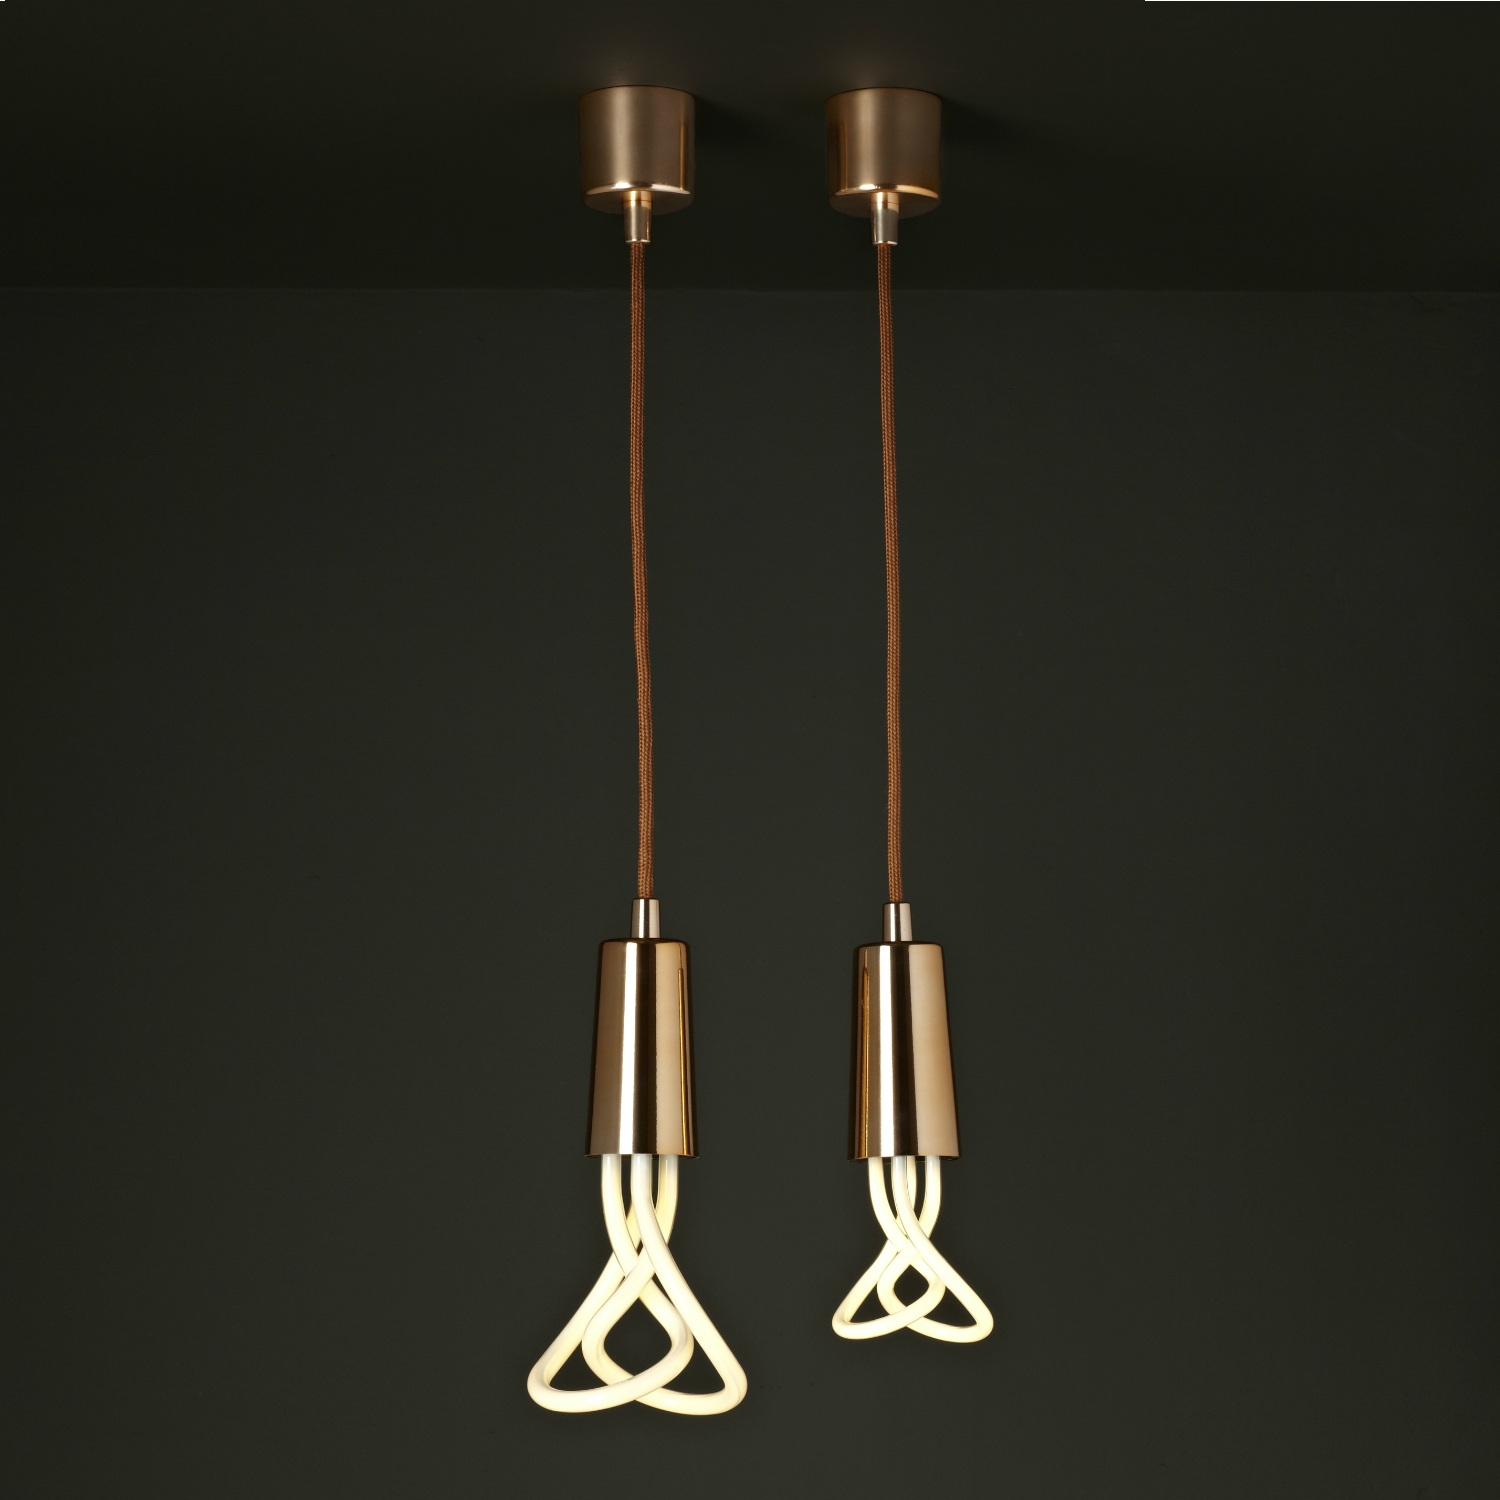 Suspension-Plumen-PLUMEN-Suspension-Cuivre-et-Ampoule-L-9482-230.jpg